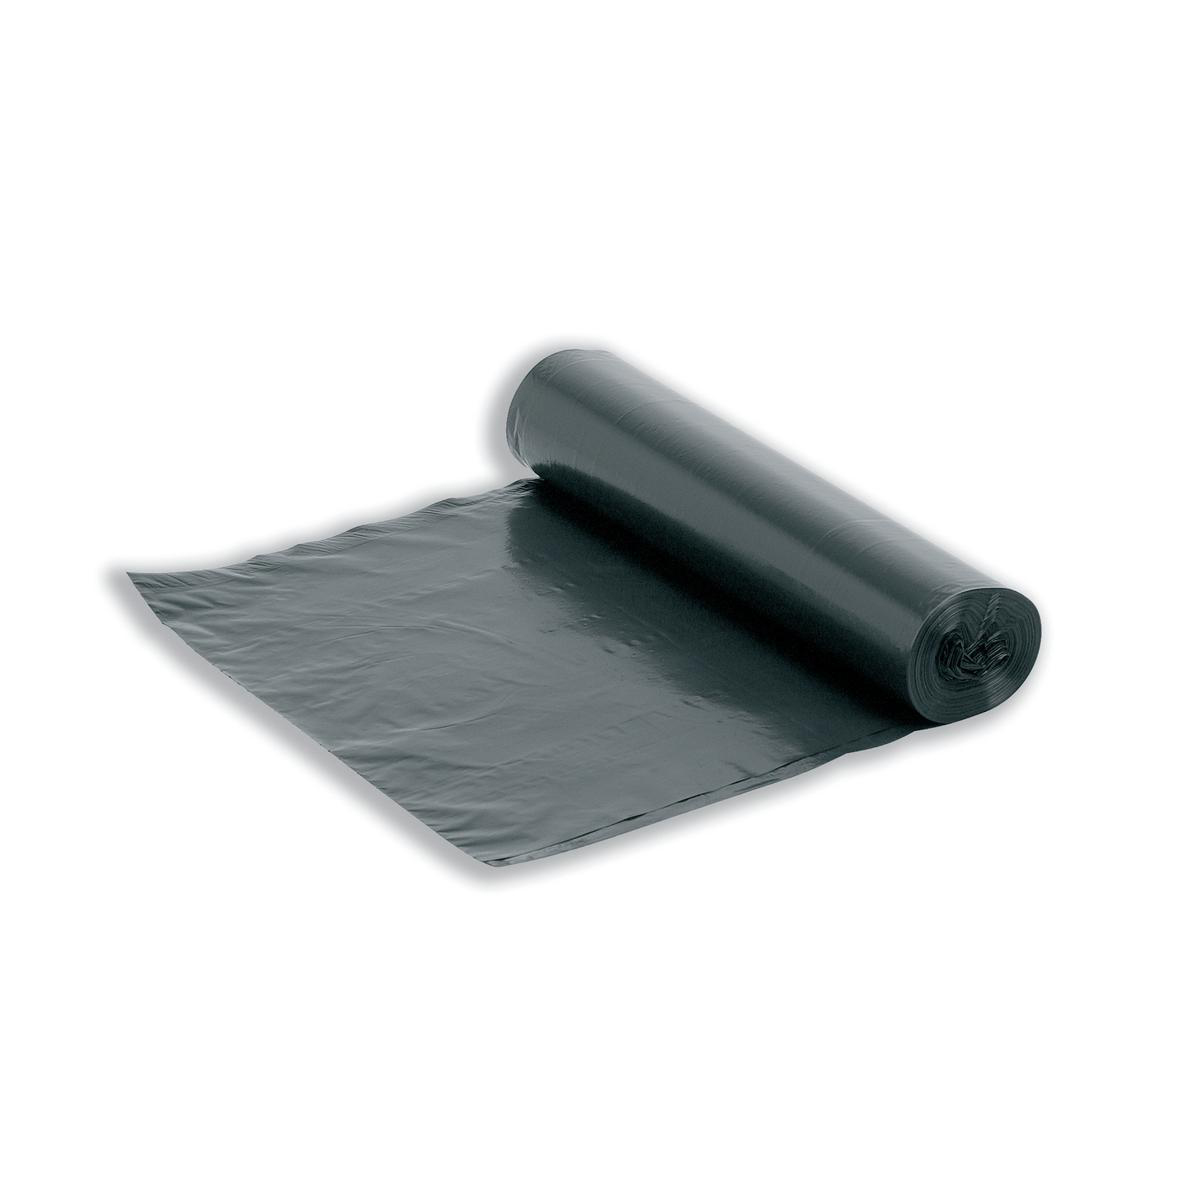 5 Star Facilities Bin Liners Heavy Duty 95 Litre Capacity W370/705xH860mm Black Roll 300